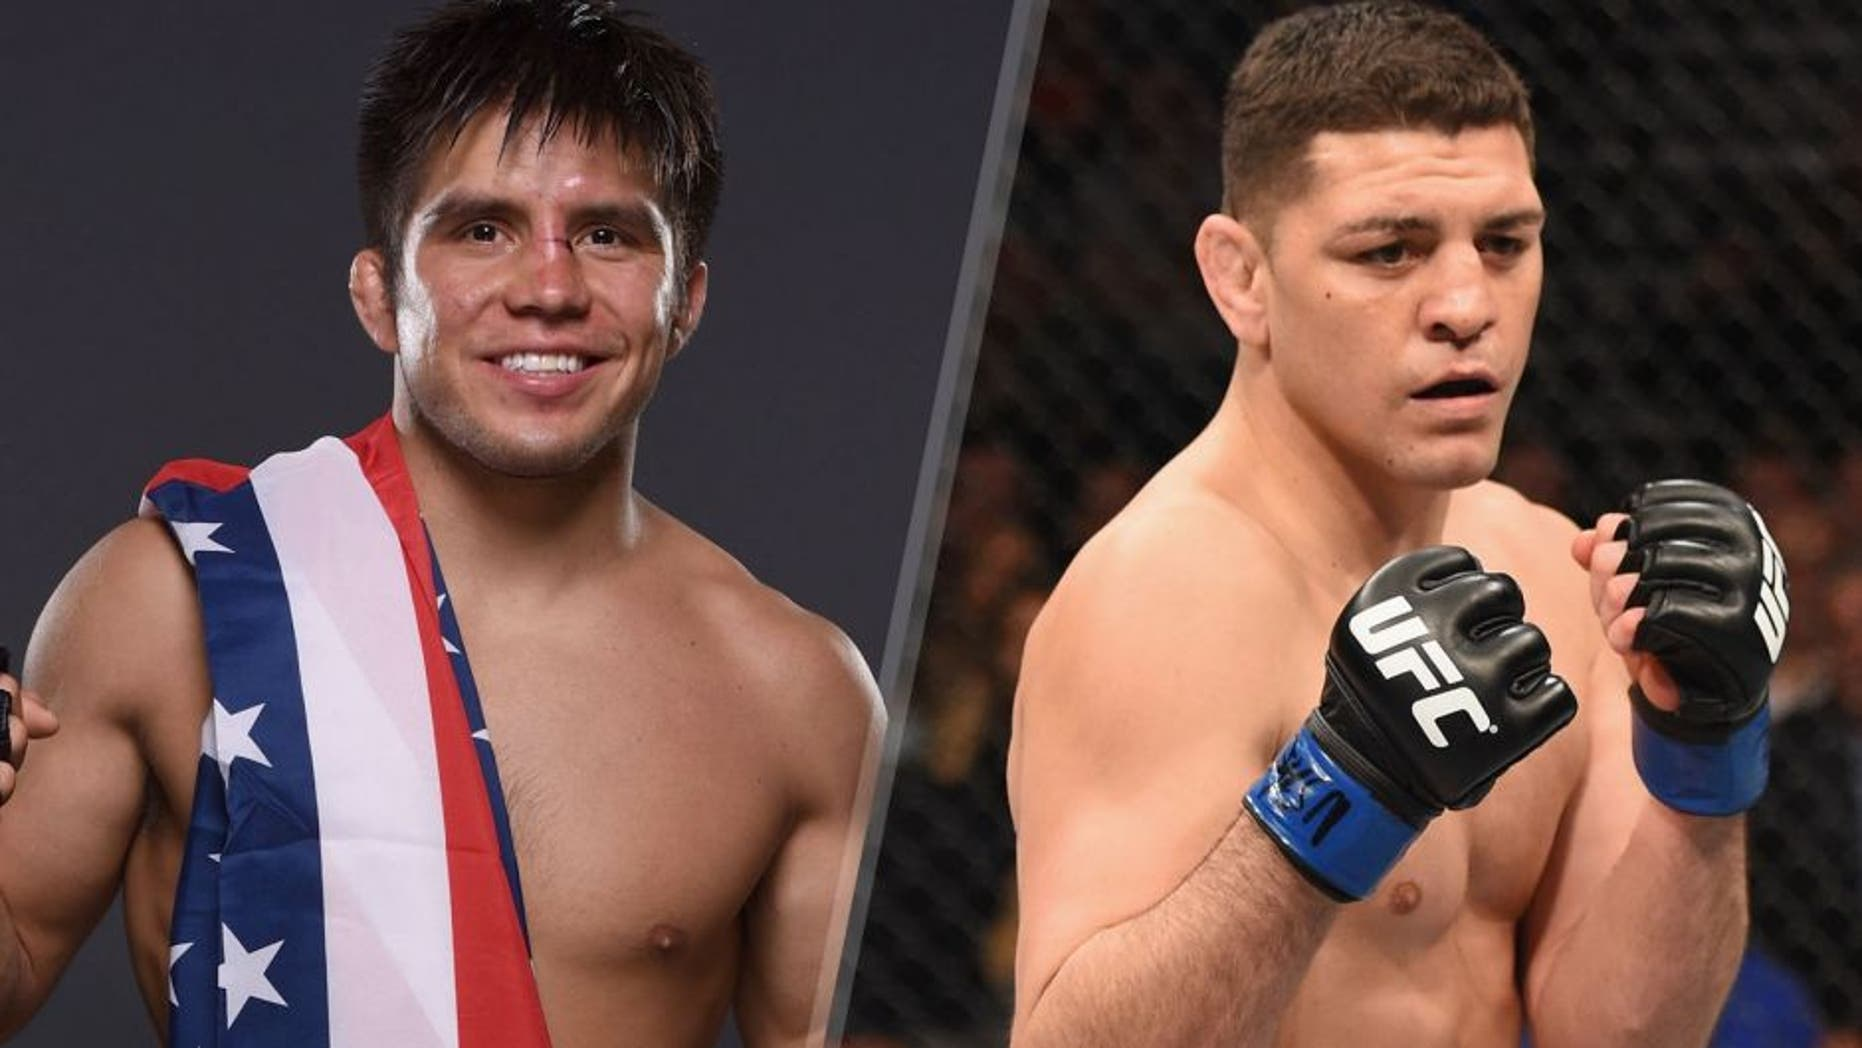 MEXICO CITY, MEXICO - JUNE 13: Henry Cejudo poses for a post fight portrait backstage during the UFC 188 event at the Arena Ciudad de Mexico on June 13, 2015 in Mexico City, Mexico. (Photo by Mike Roach/Zuffa LLC/Zuffa LLC via Getty Images)